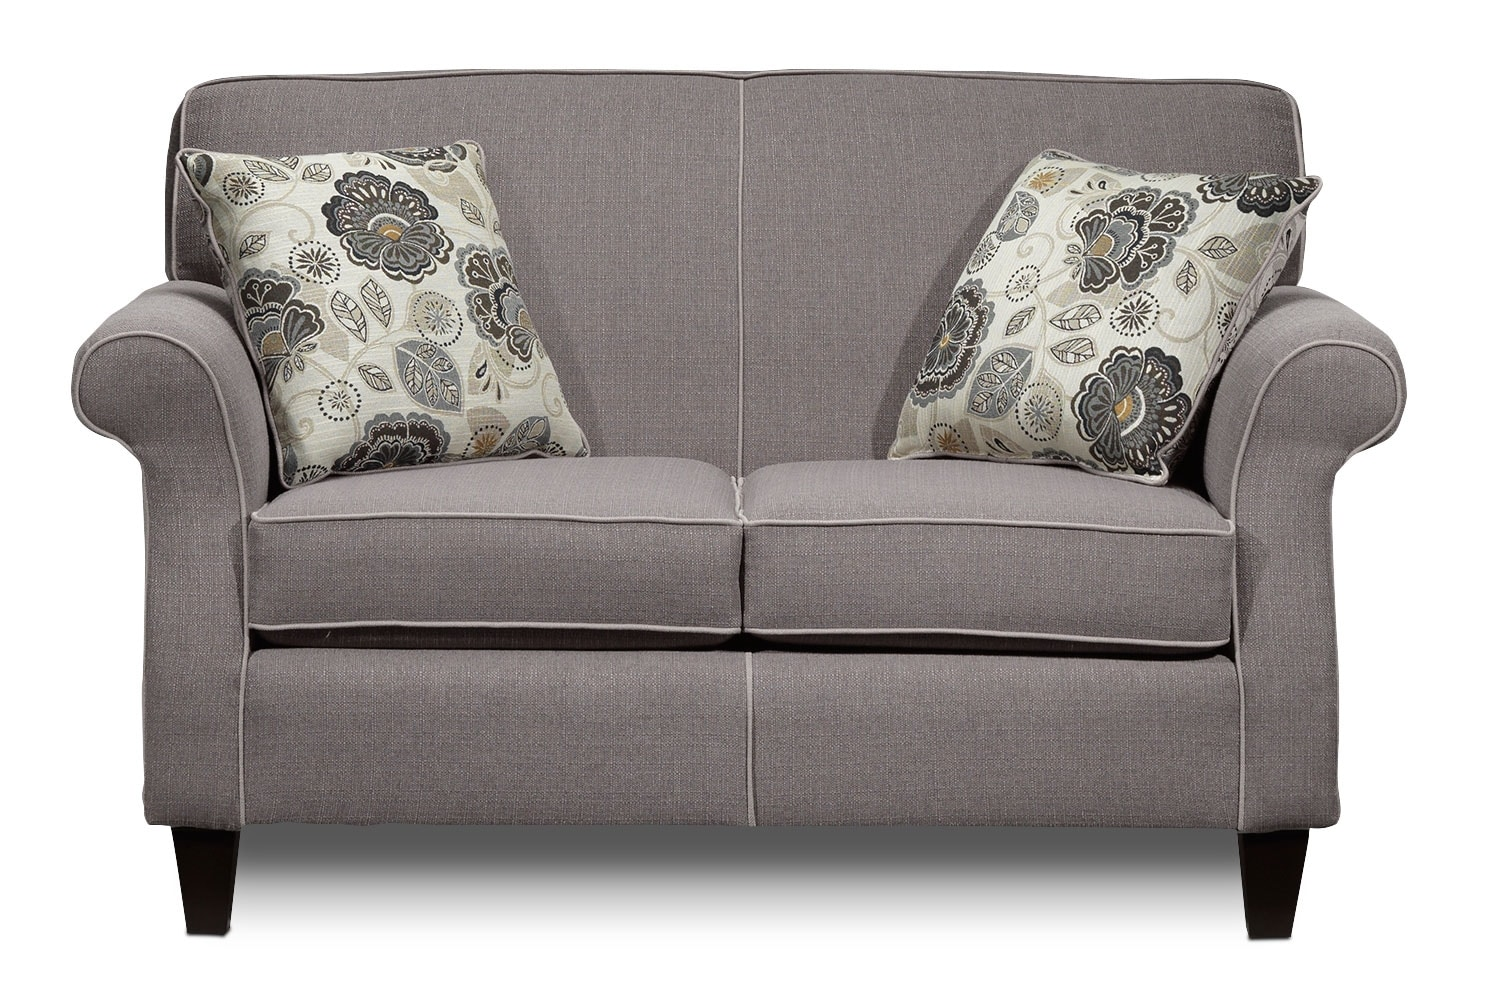 Living Room Furniture - Aristo Loveseat - Taupe